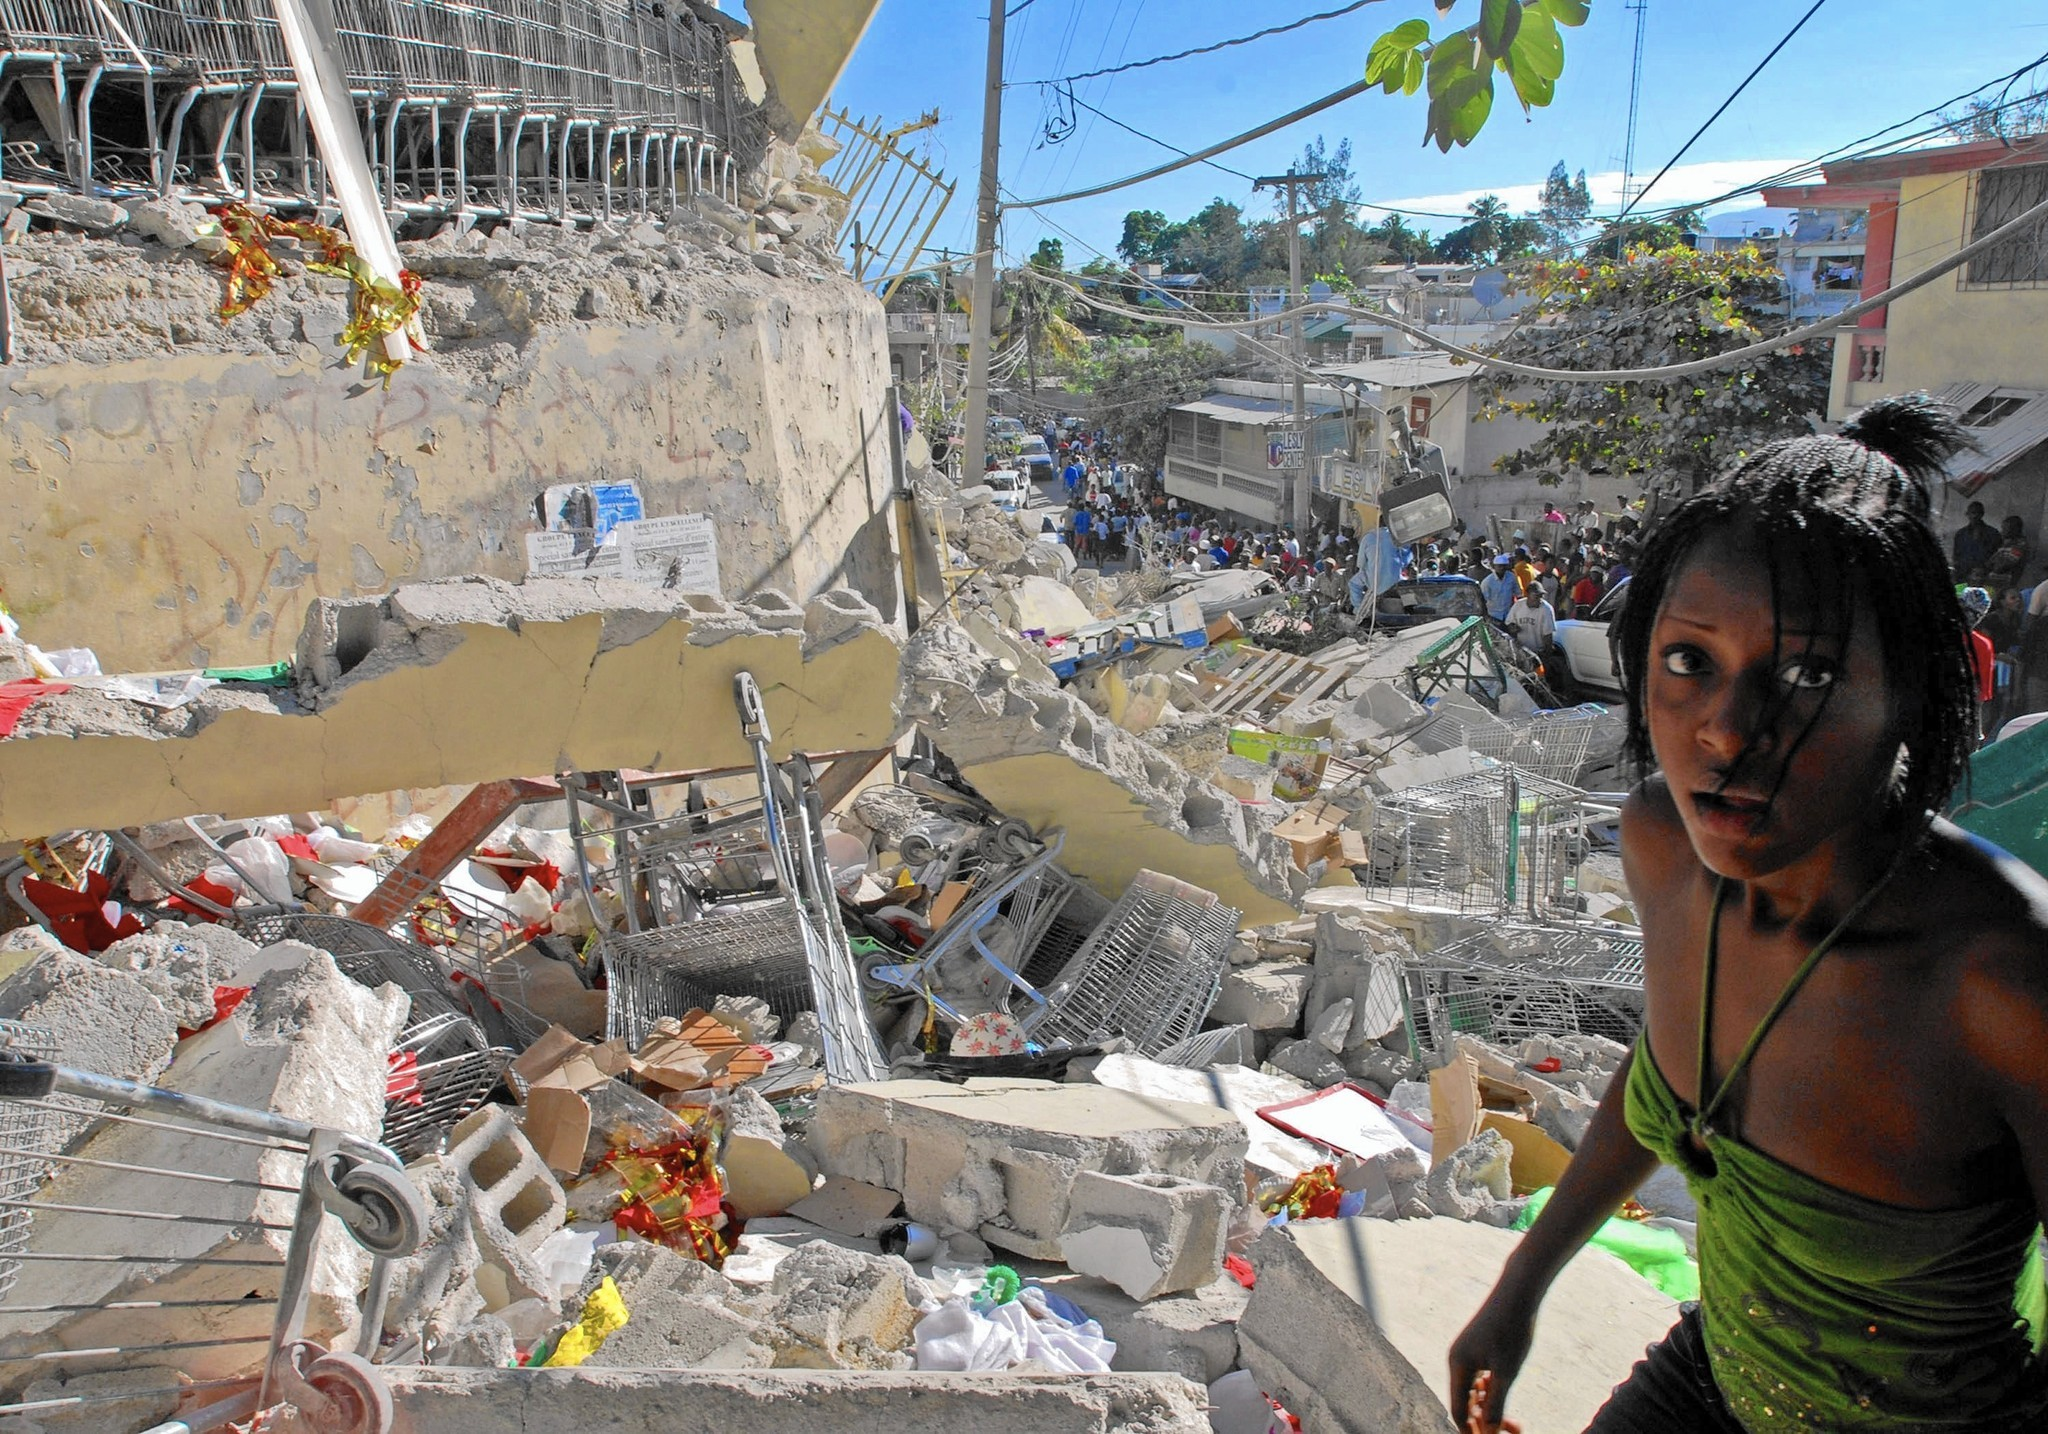 """red cross in haiti essay Inside the red cross, the haiti disaster was seen as """"a spectacular fundraising opportunity,"""" recalled one former american red cross and propublica analysis."""